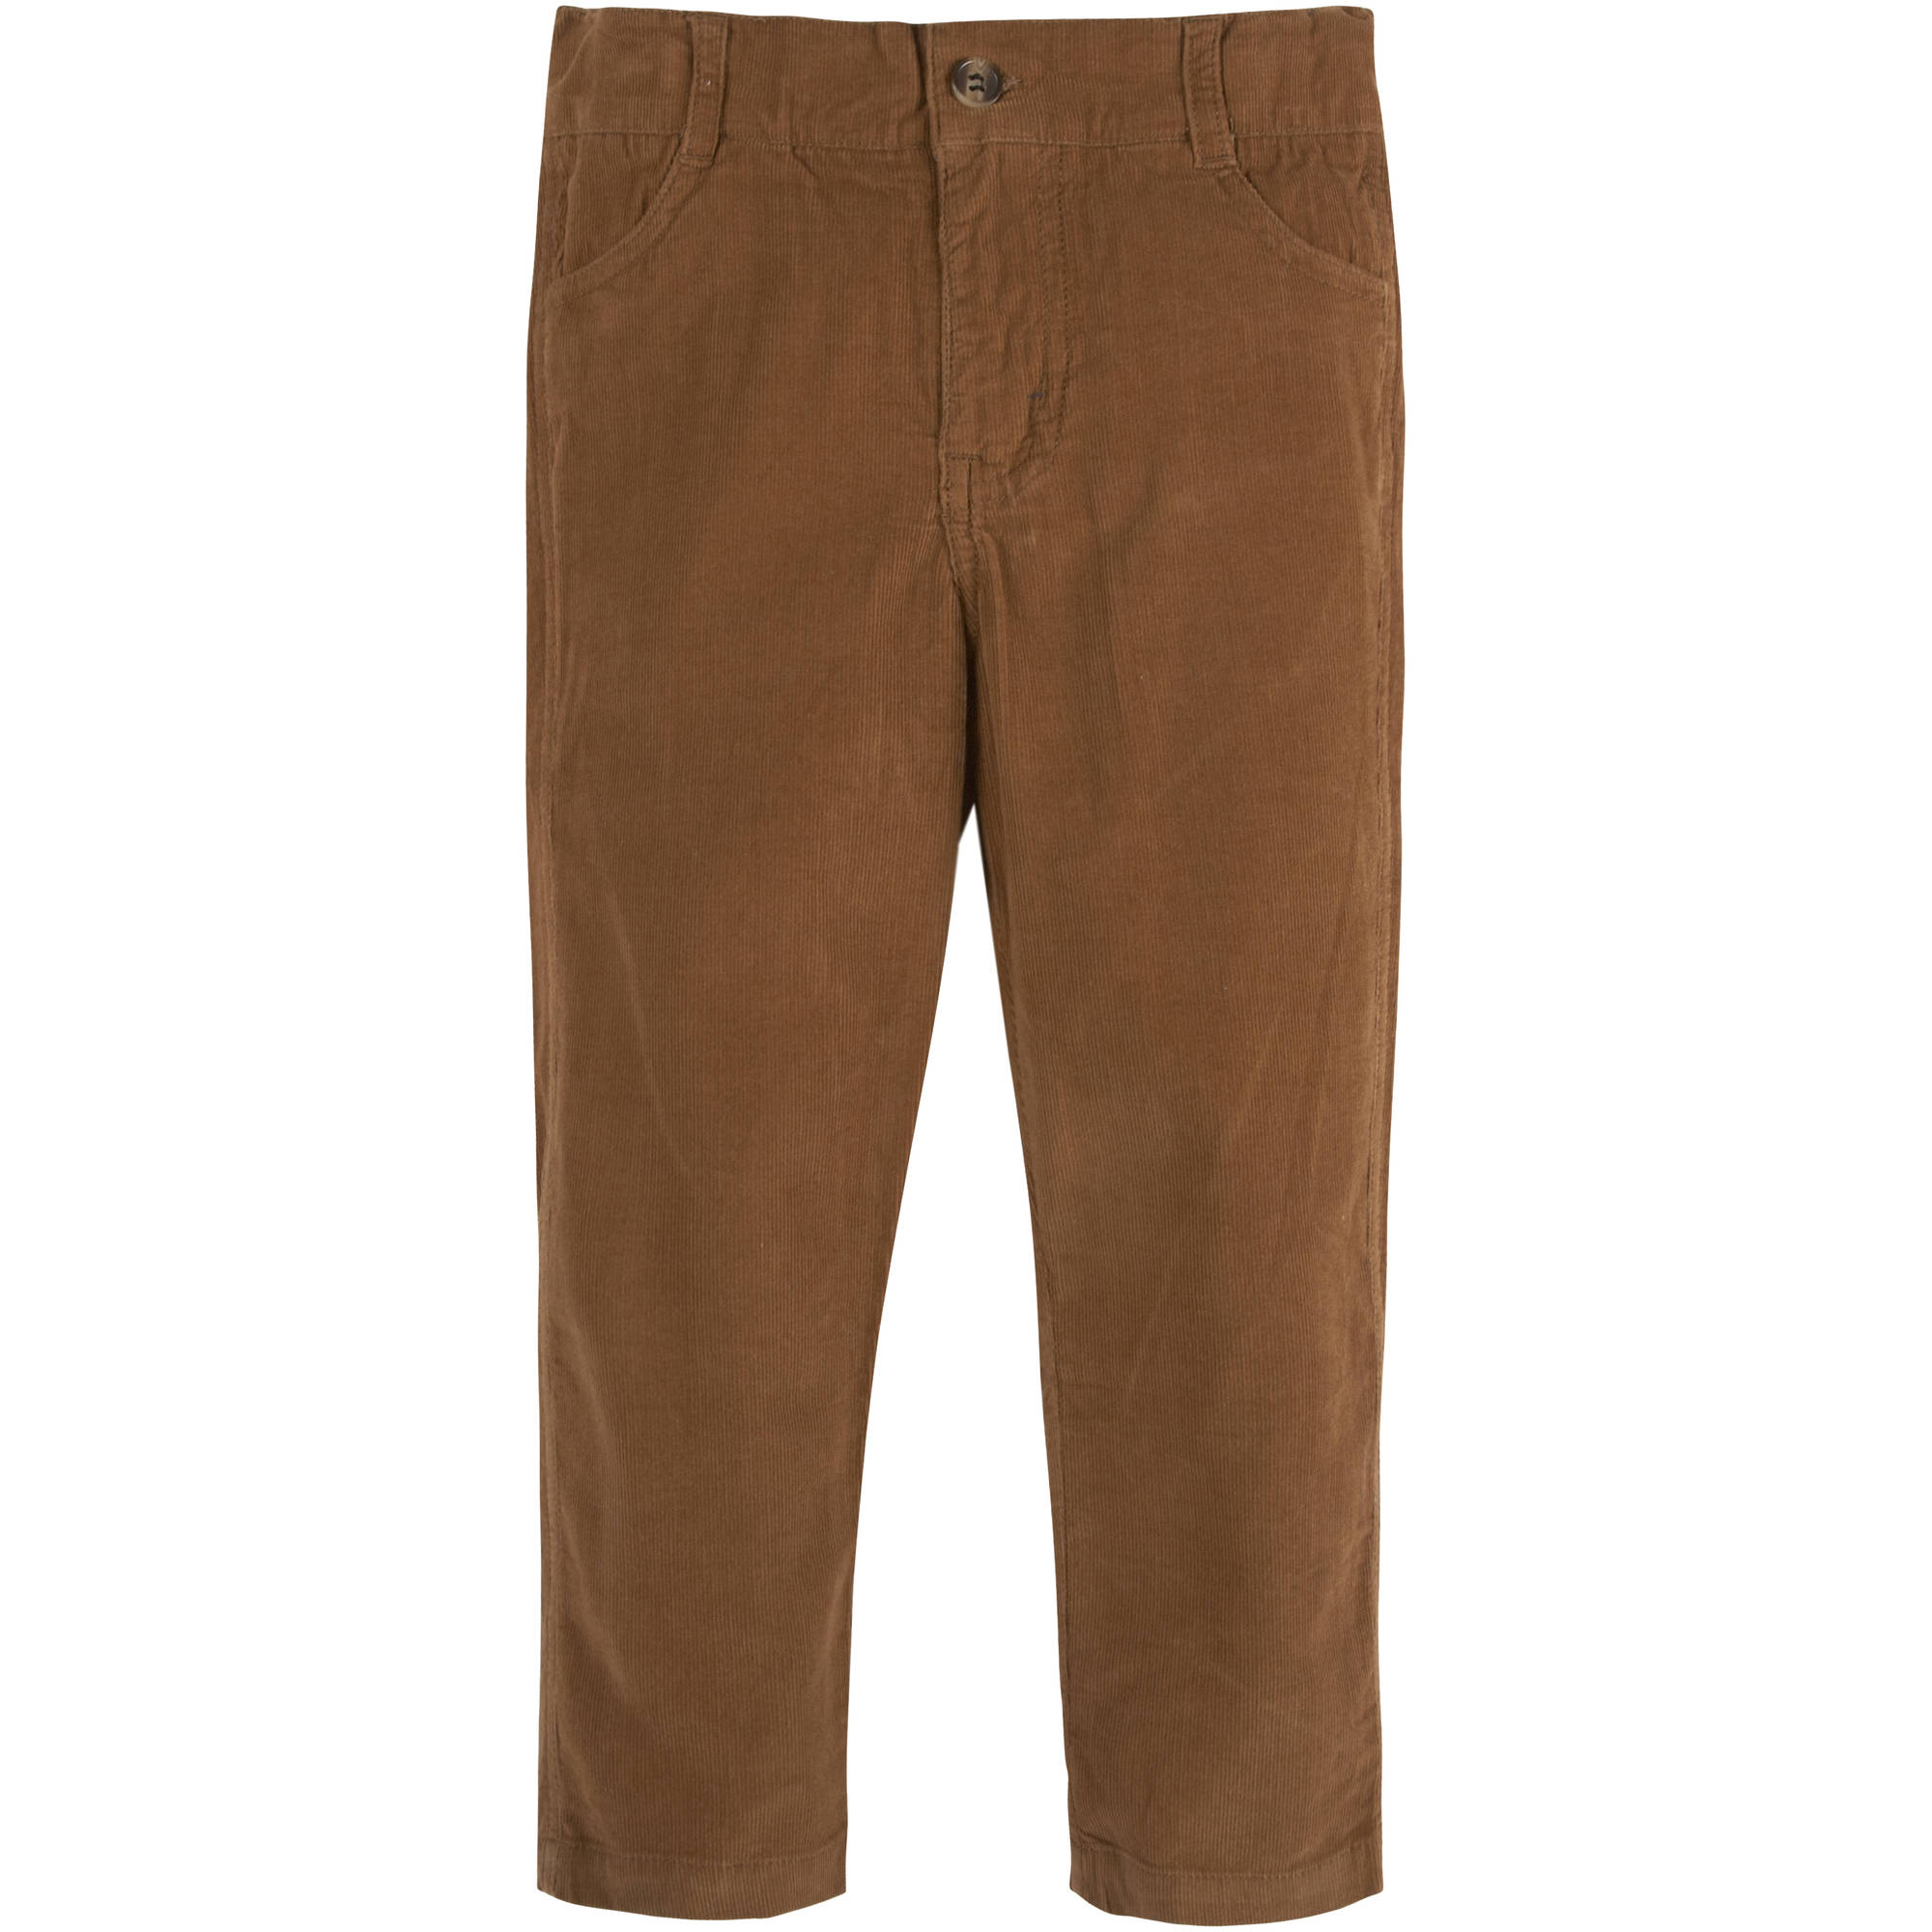 G-Cutee Boys Color Corduroy Pants